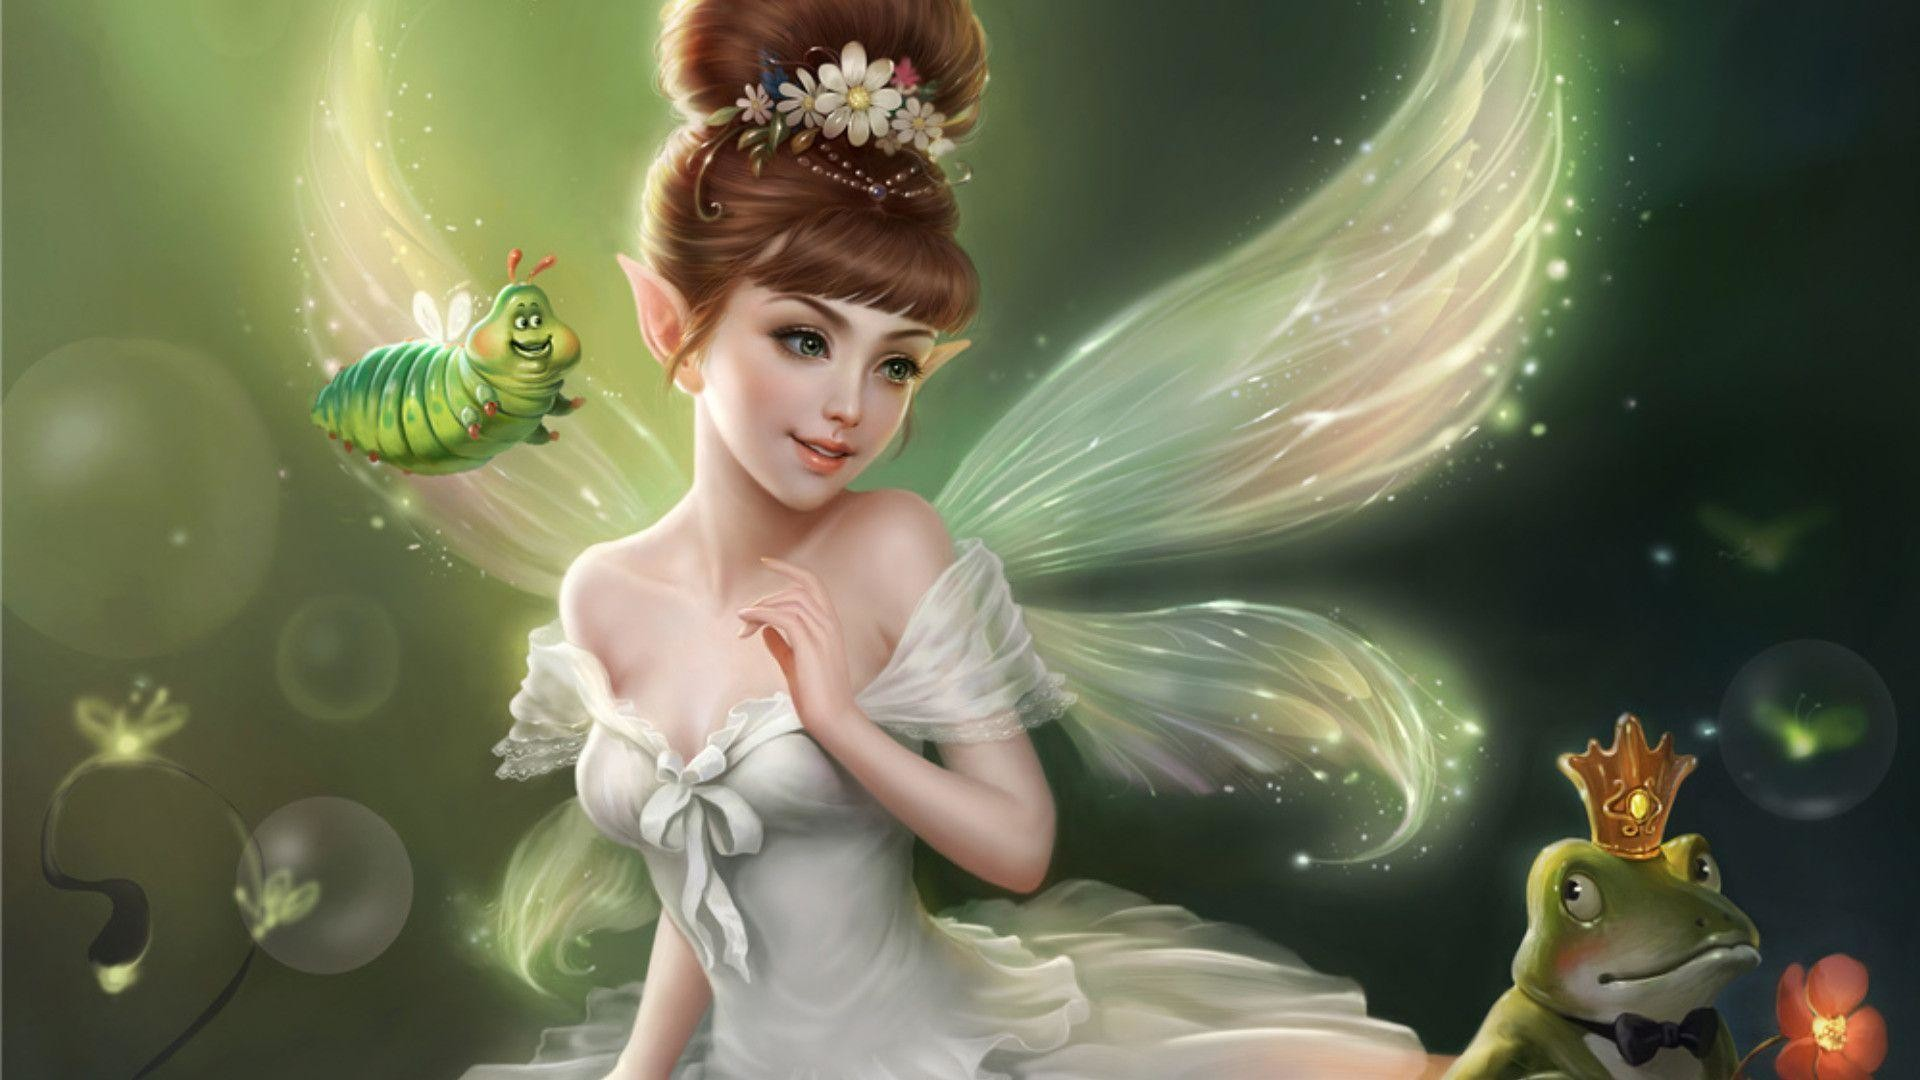 1920x1080 - Fairy Wallpapers 9